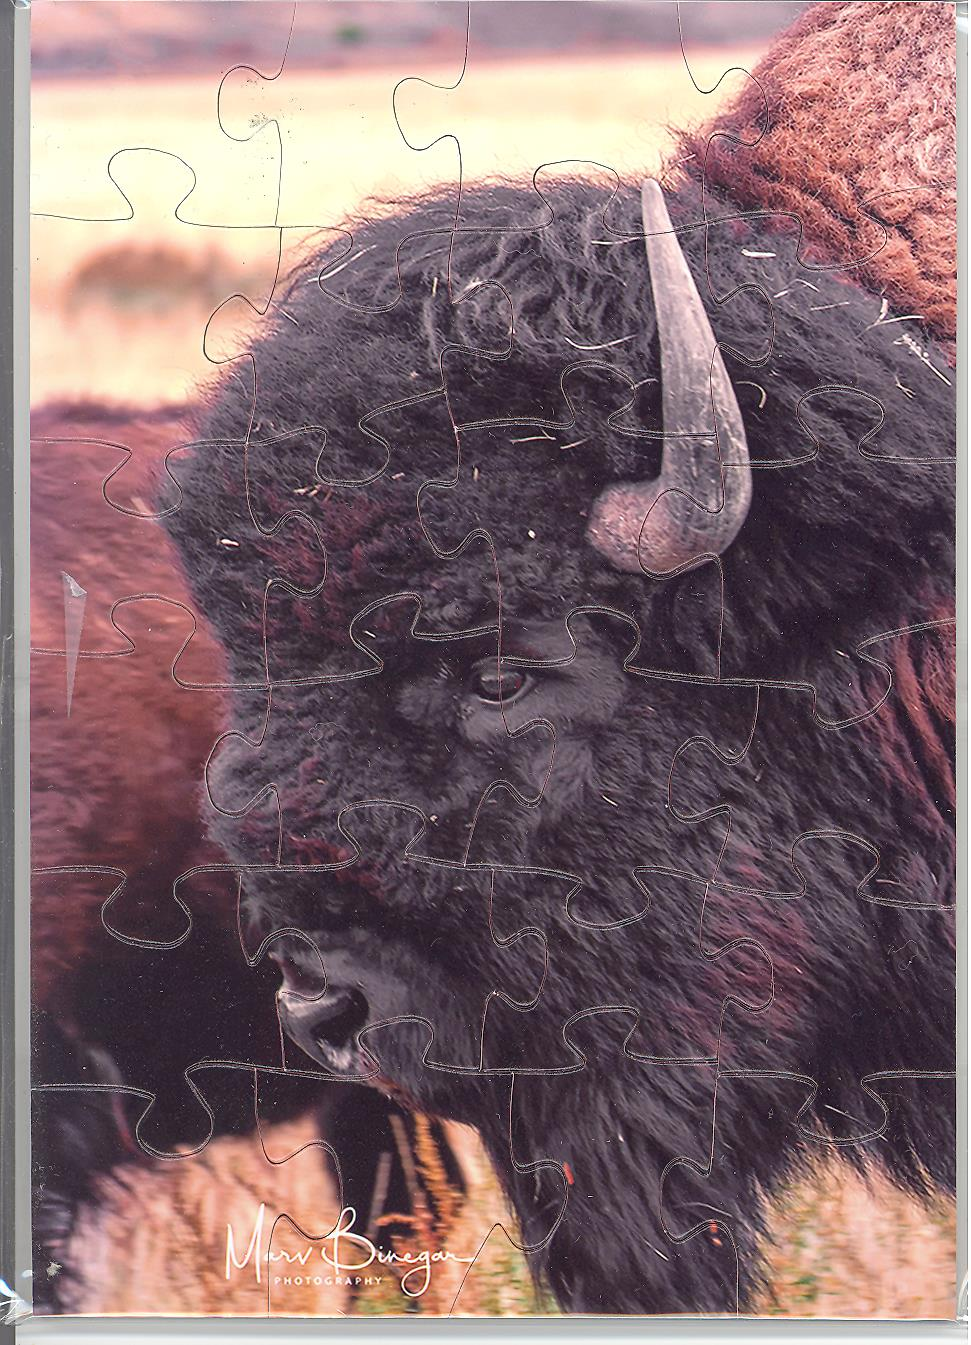 Puzzle Postcard American Bison Buffalo Yellowstone by Marv Binegar